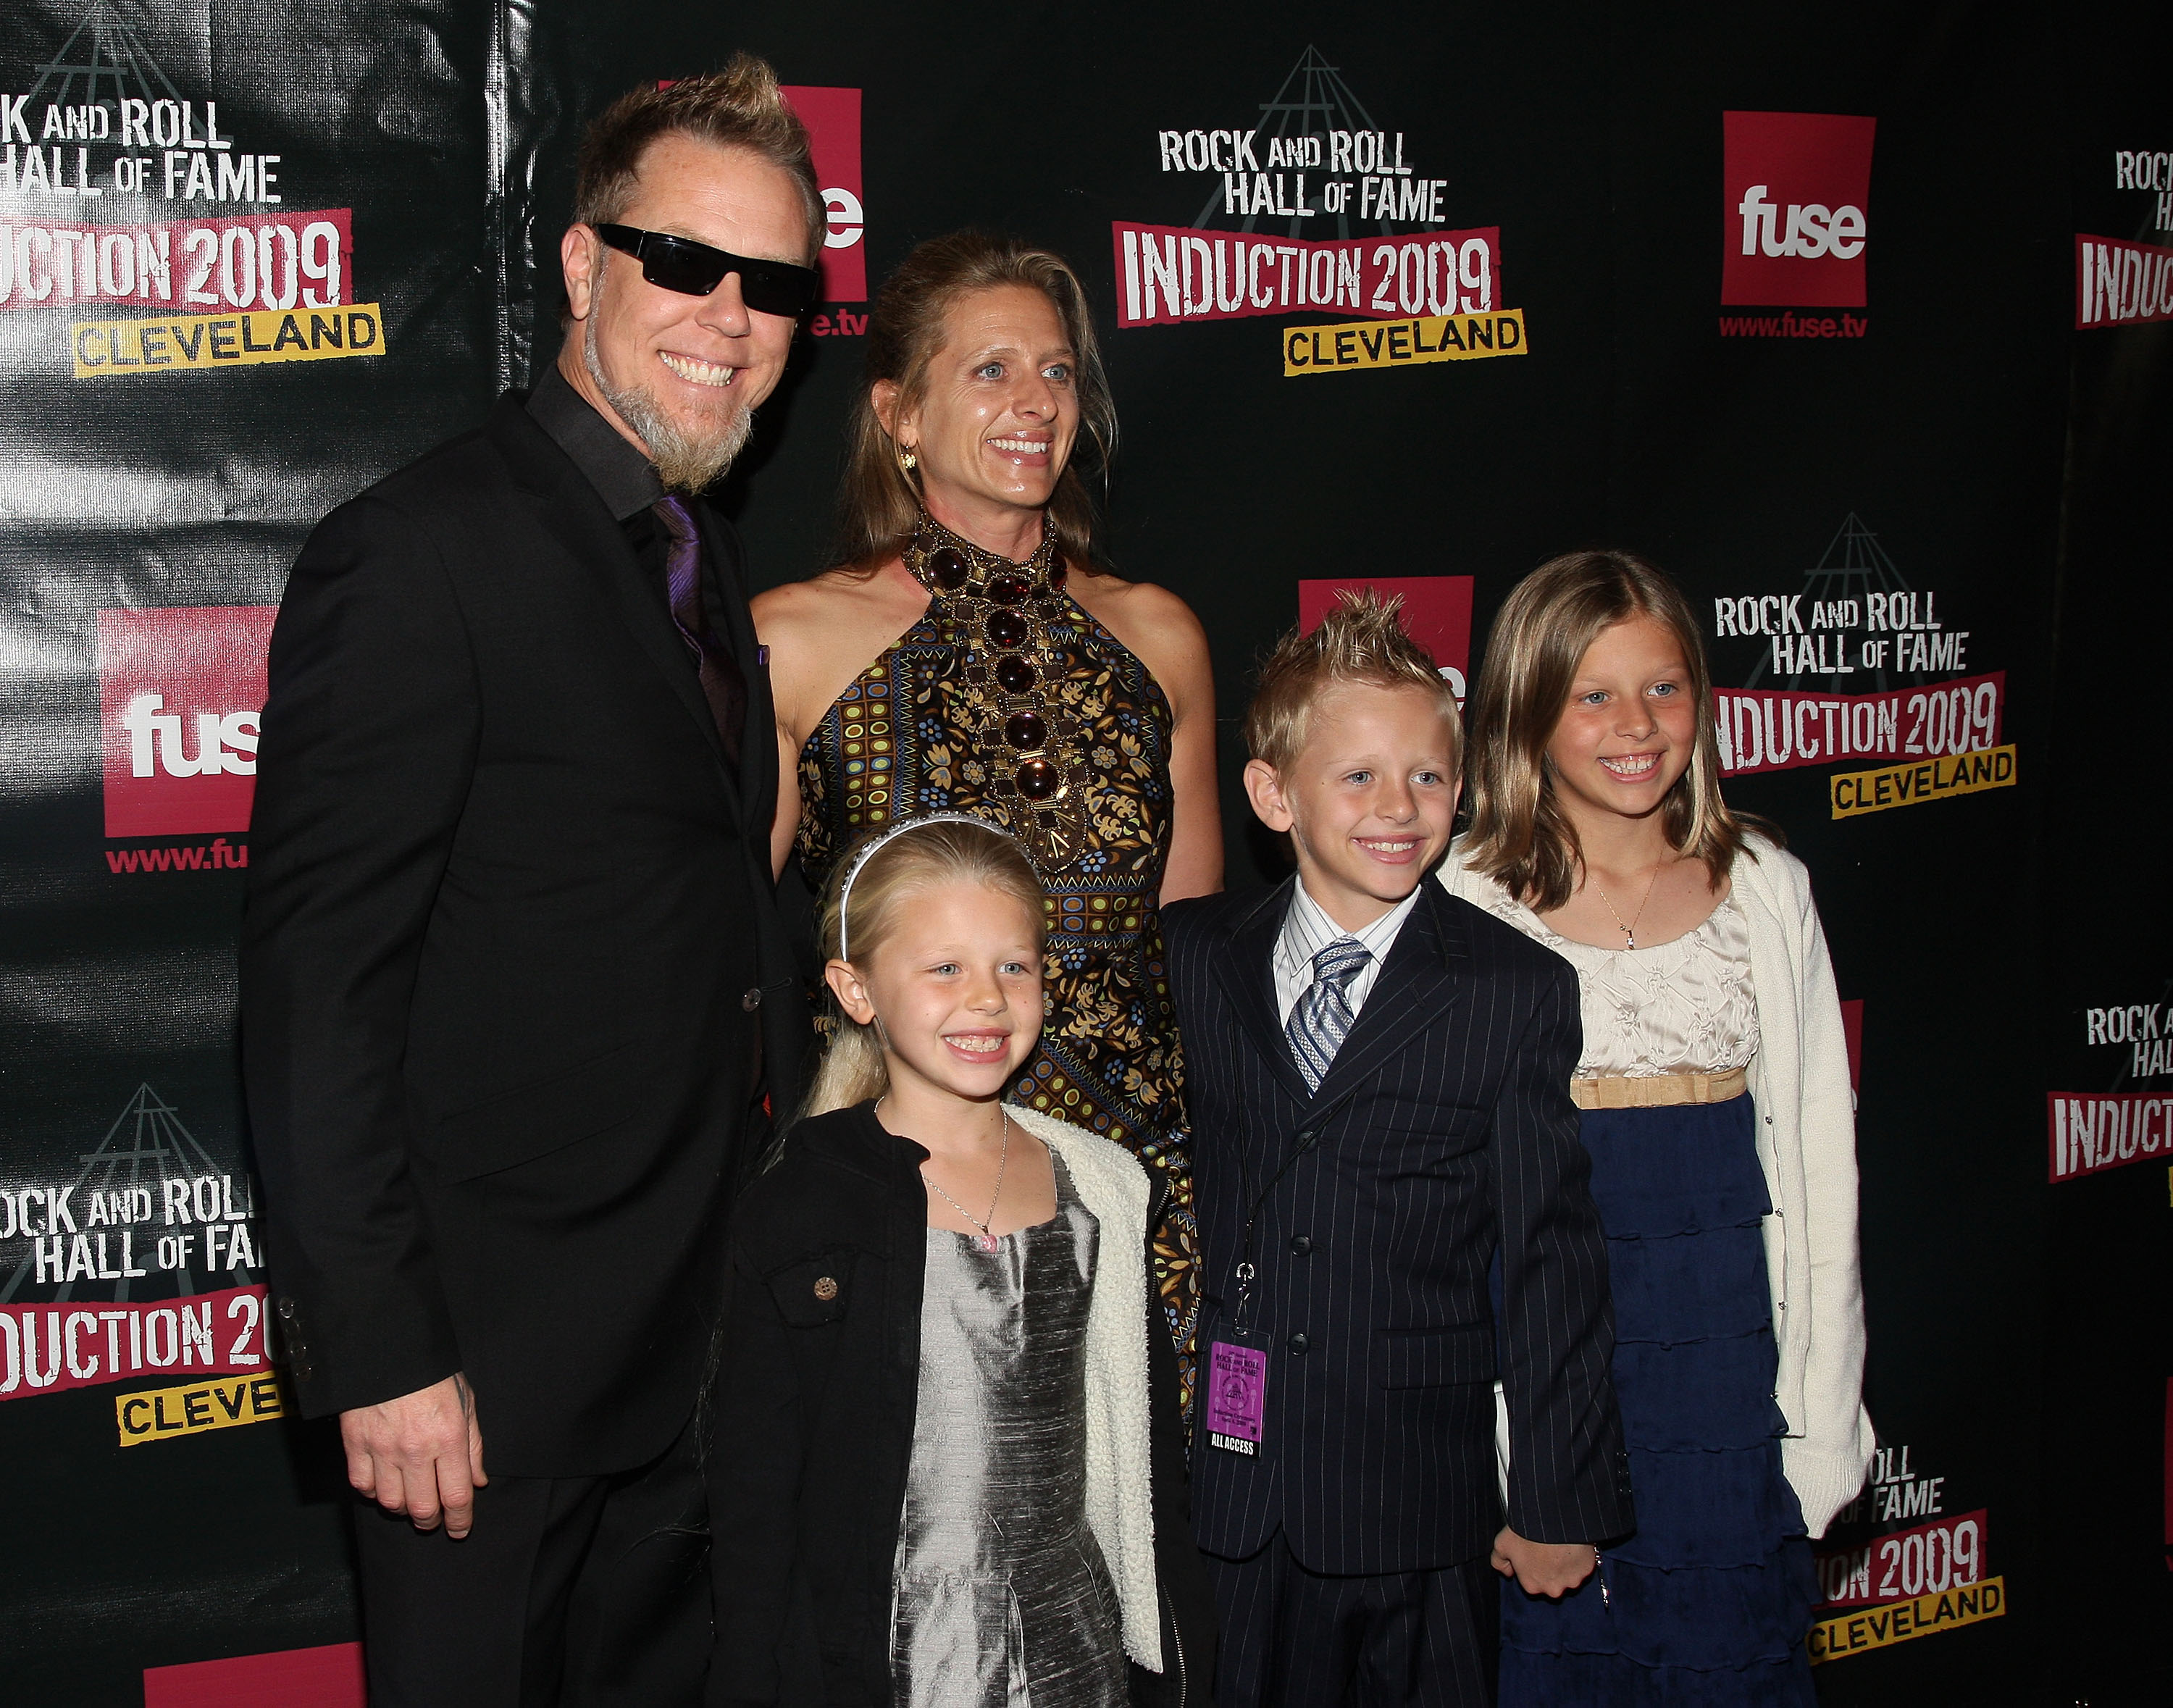 24th Annual Rock and Roll Hall of Fame Induction Ceremony - Red Carpet